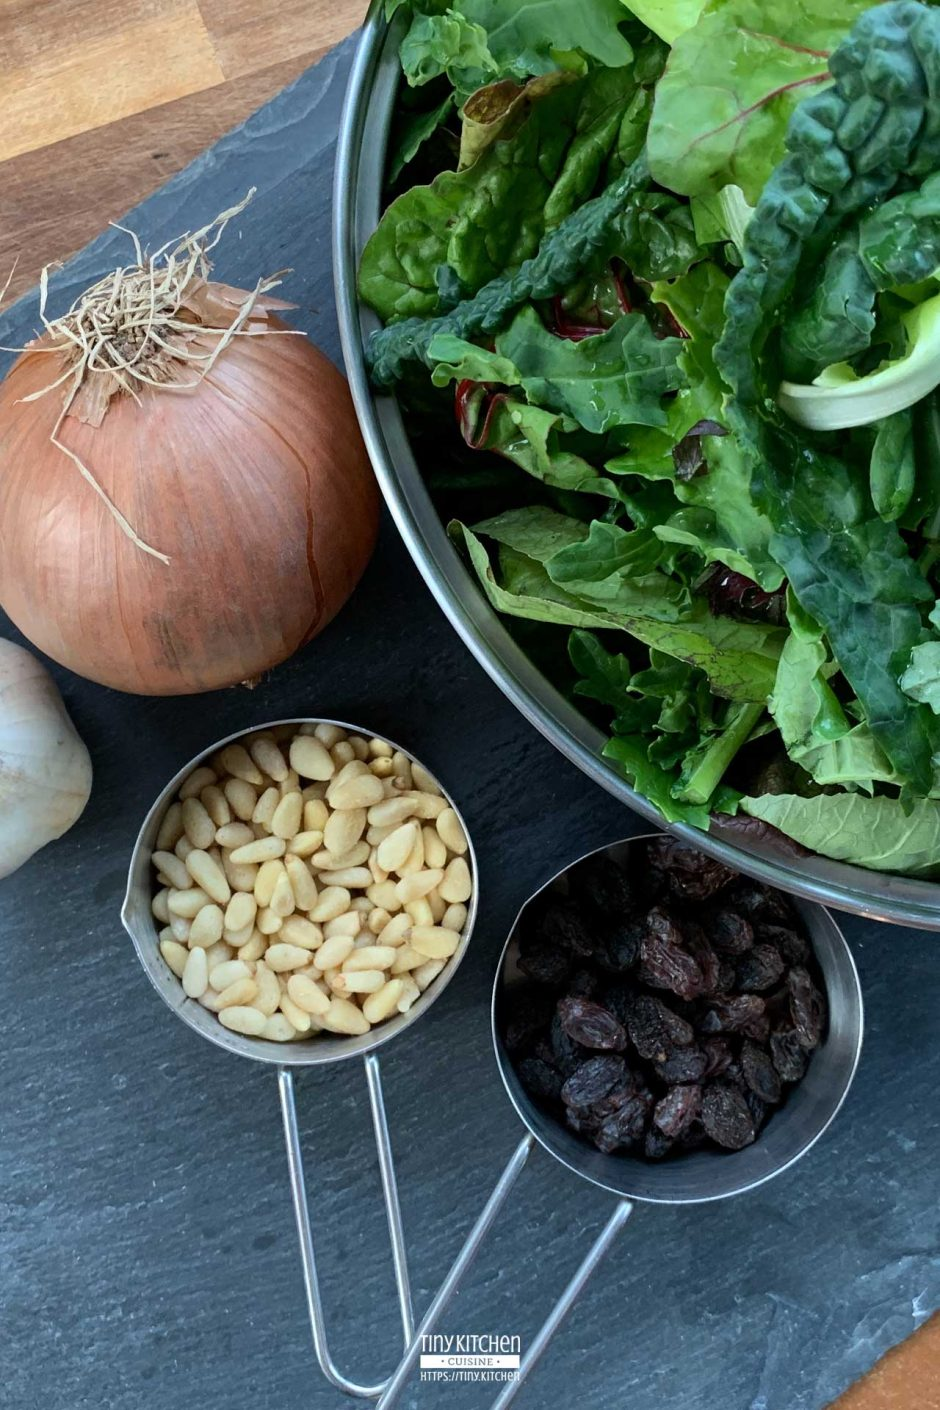 A bowl of fresh mixed braising greens next to an onion, a head of garlic, and two measuring cups filled with pine nuts and raisins.